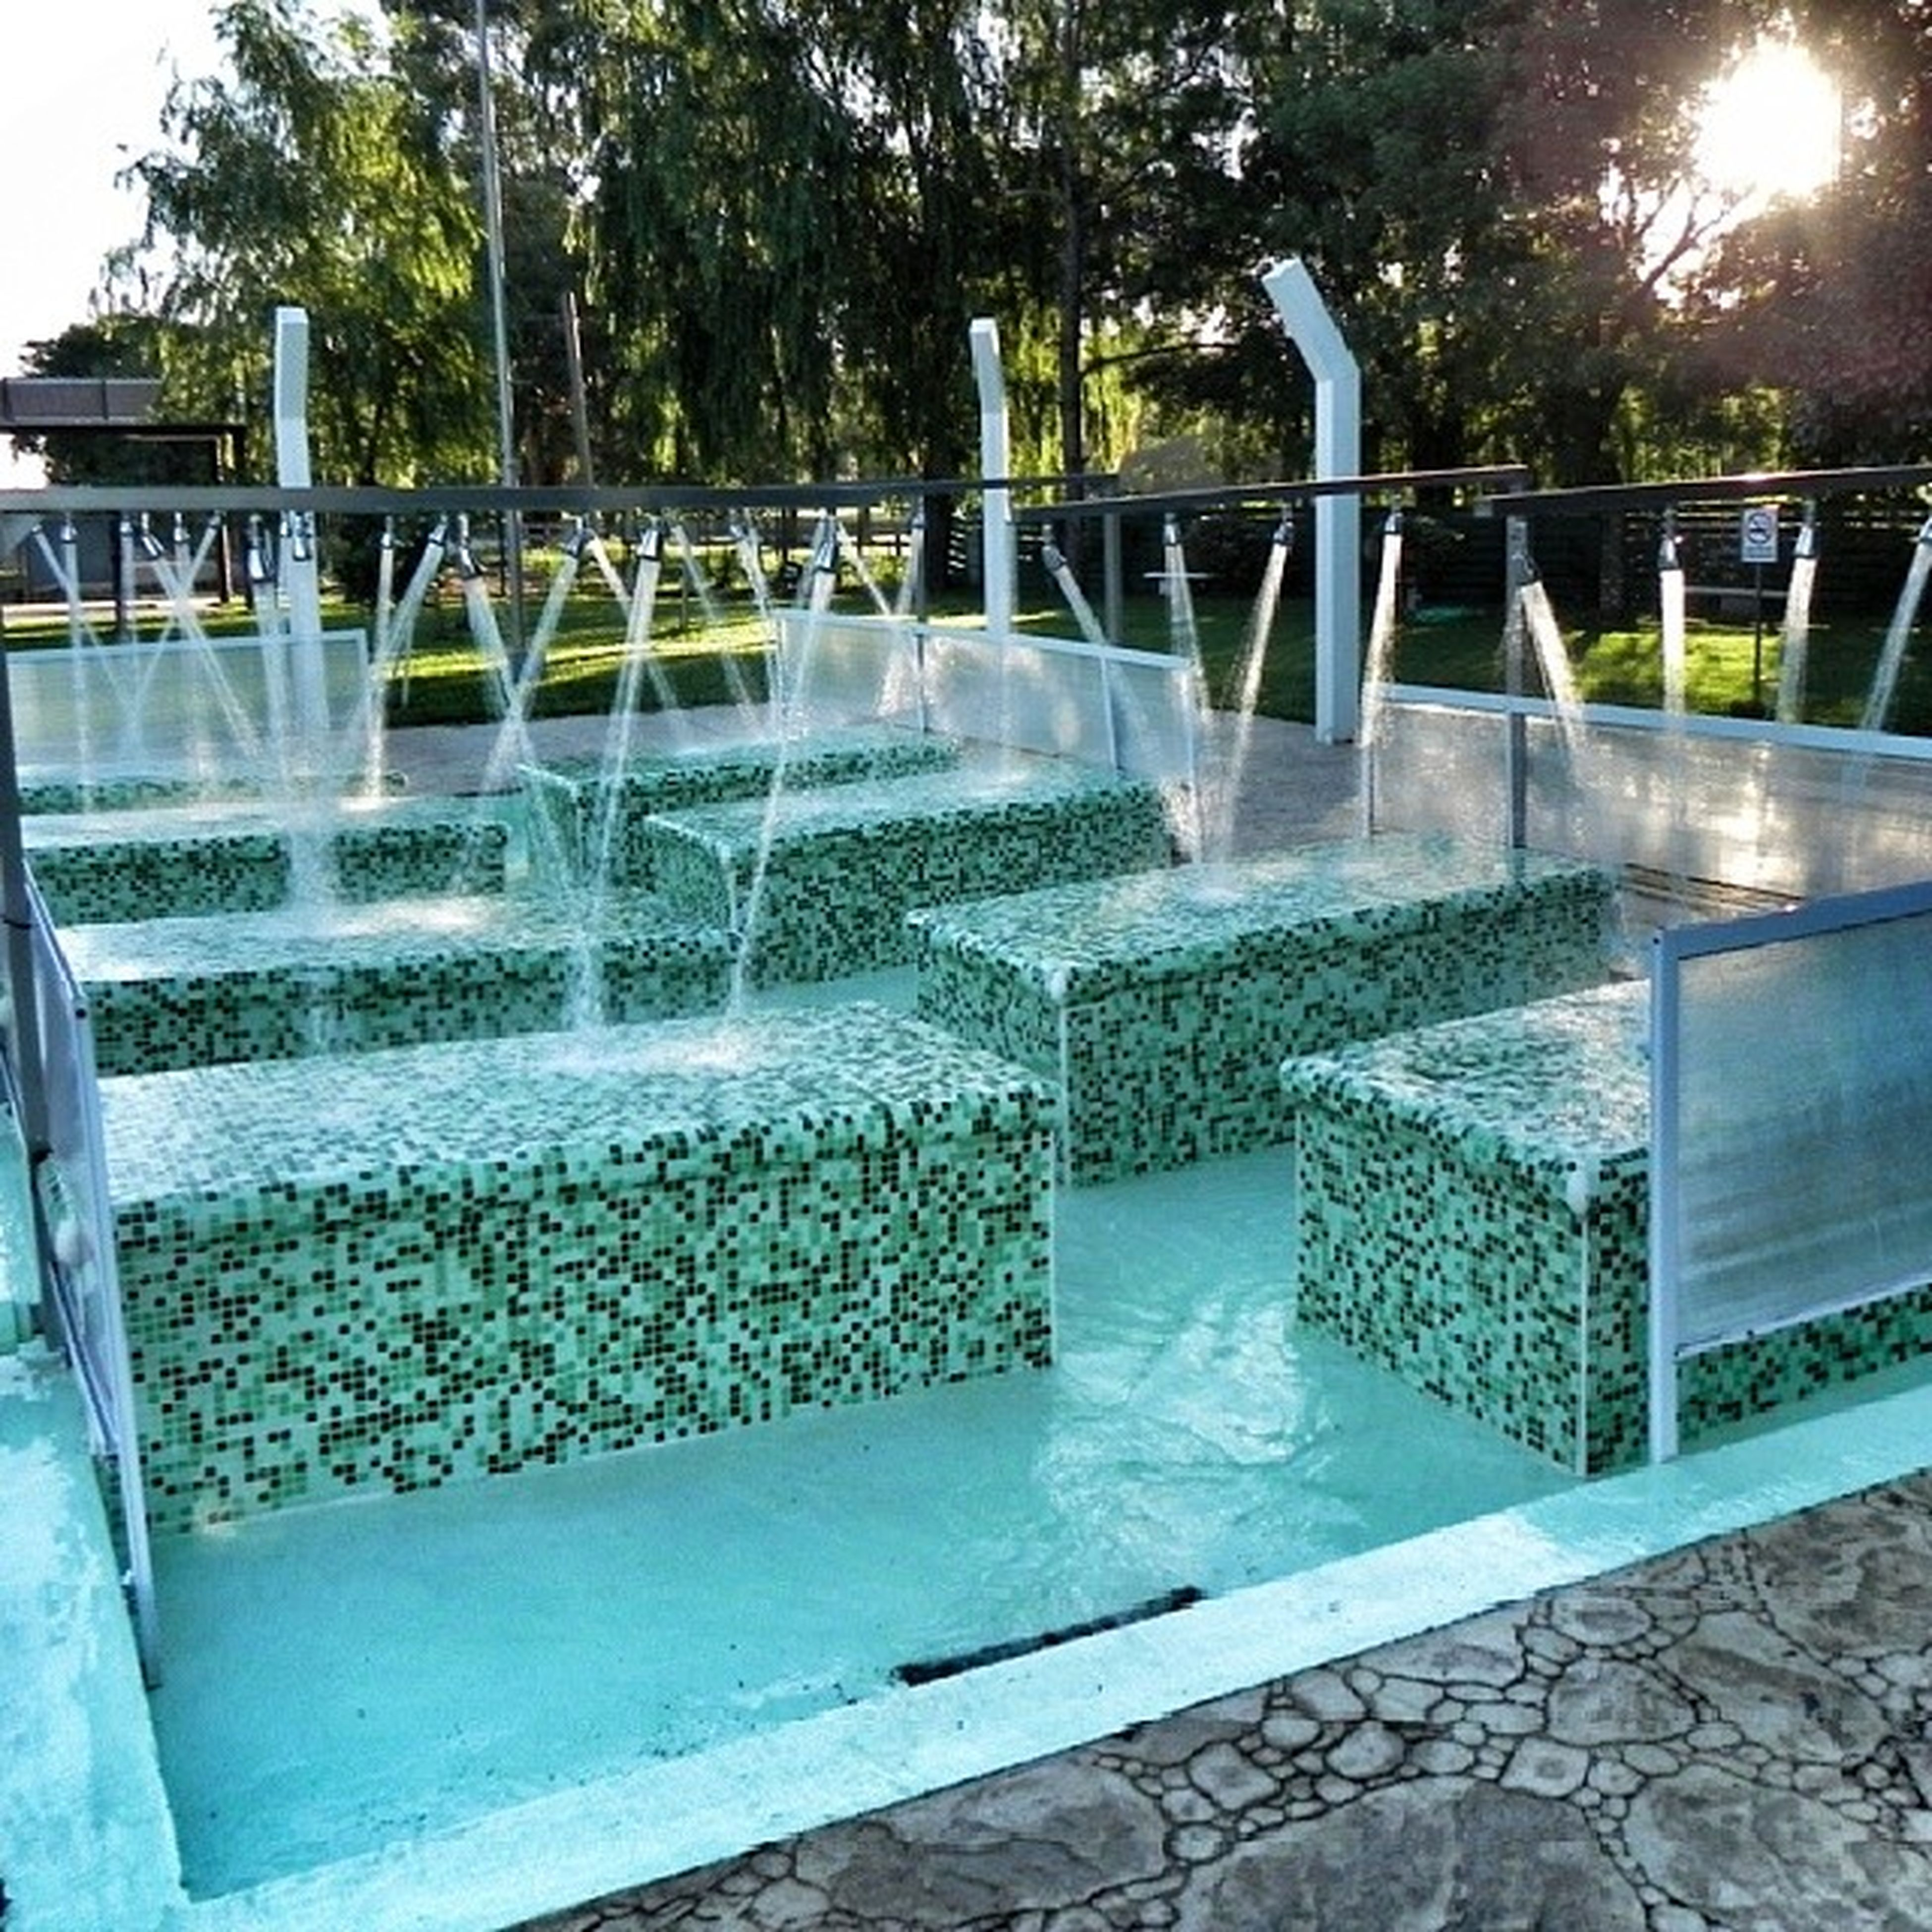 water, railing, fountain, reflection, tree, sunlight, built structure, swimming pool, motion, park - man made space, glass - material, architecture, pond, day, sunbeam, splashing, nature, metal, outdoors, no people